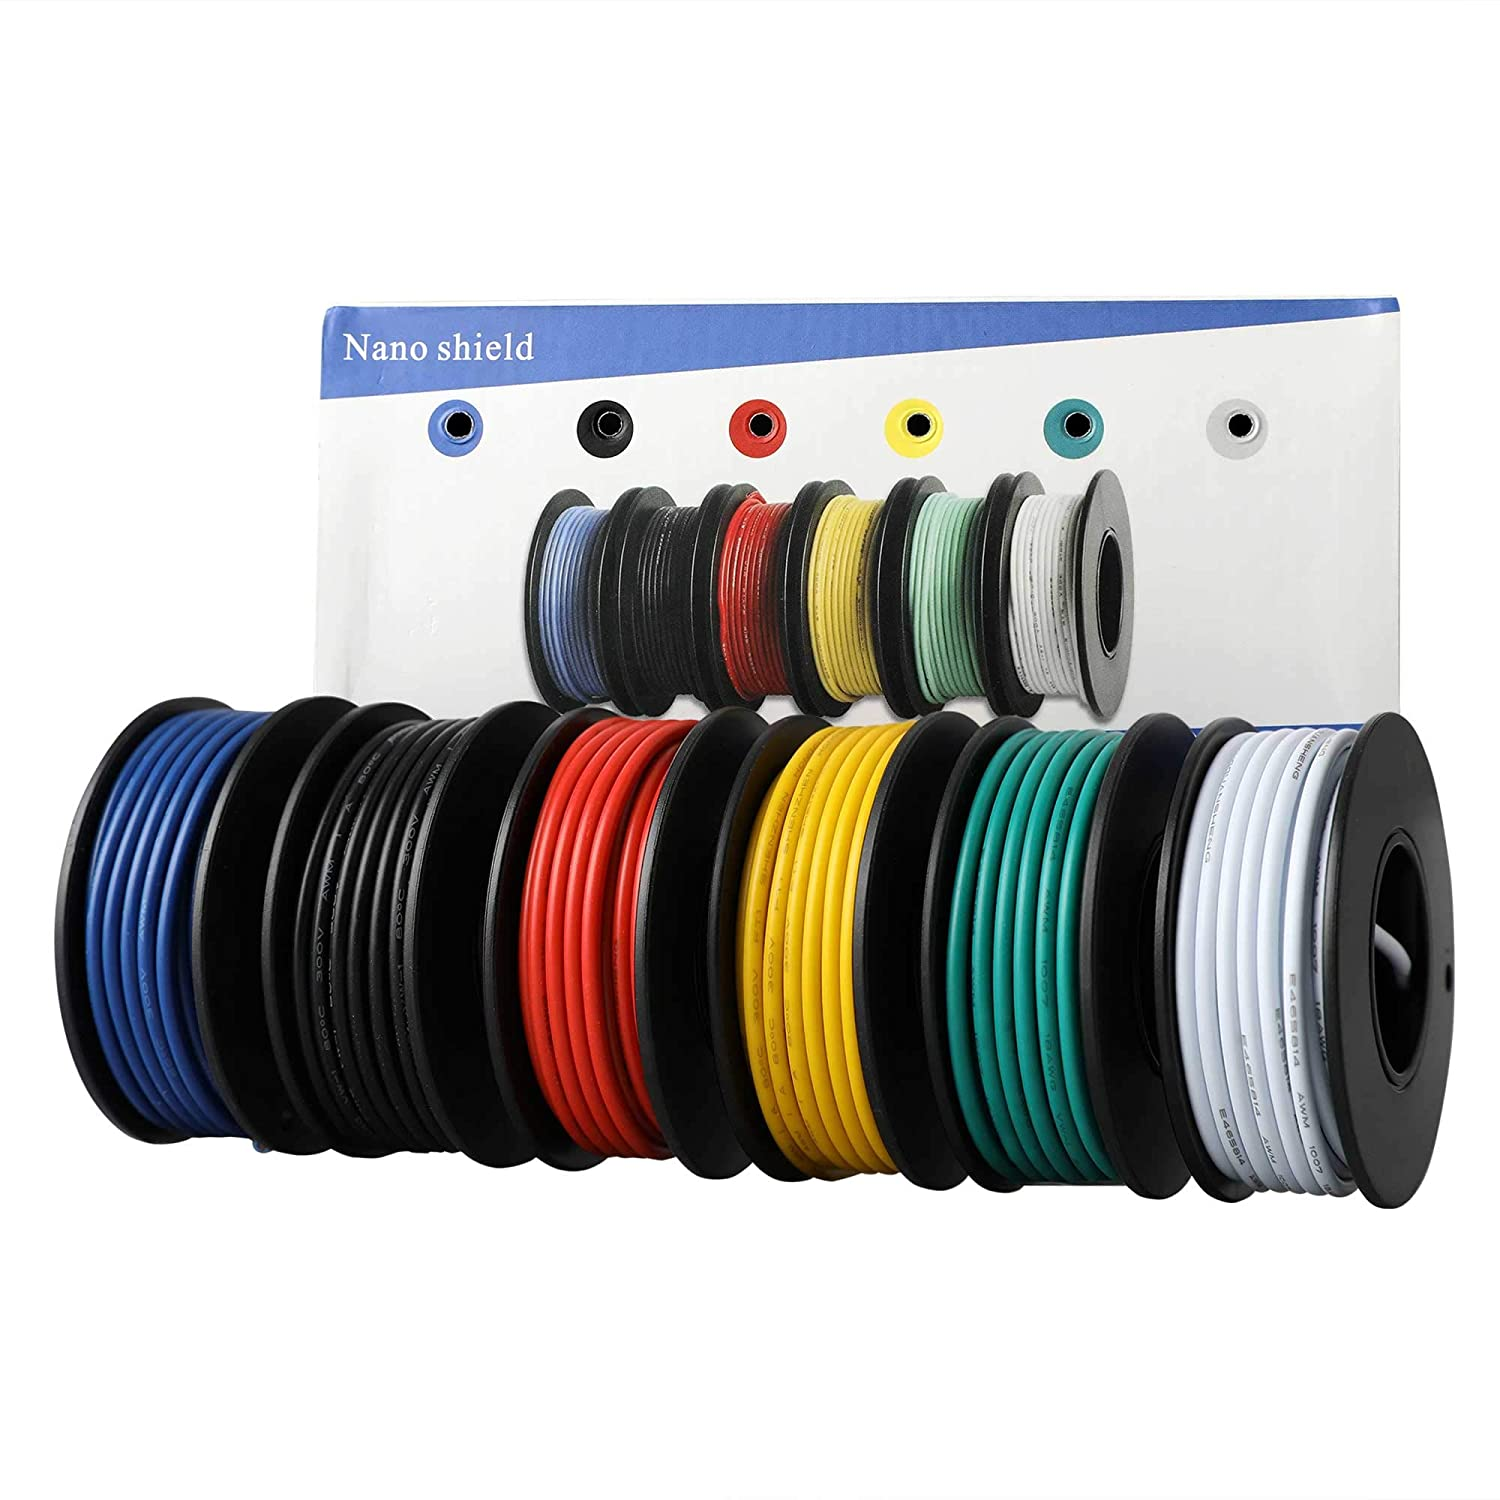 18awg ul1007 pvc stranded tinned copper wire, hook up wire 6 colors (16 4ft each) flexible 34 gauge pvc insulated electrical wire, 300v tinned copper electrical wires electrical cable color code and size